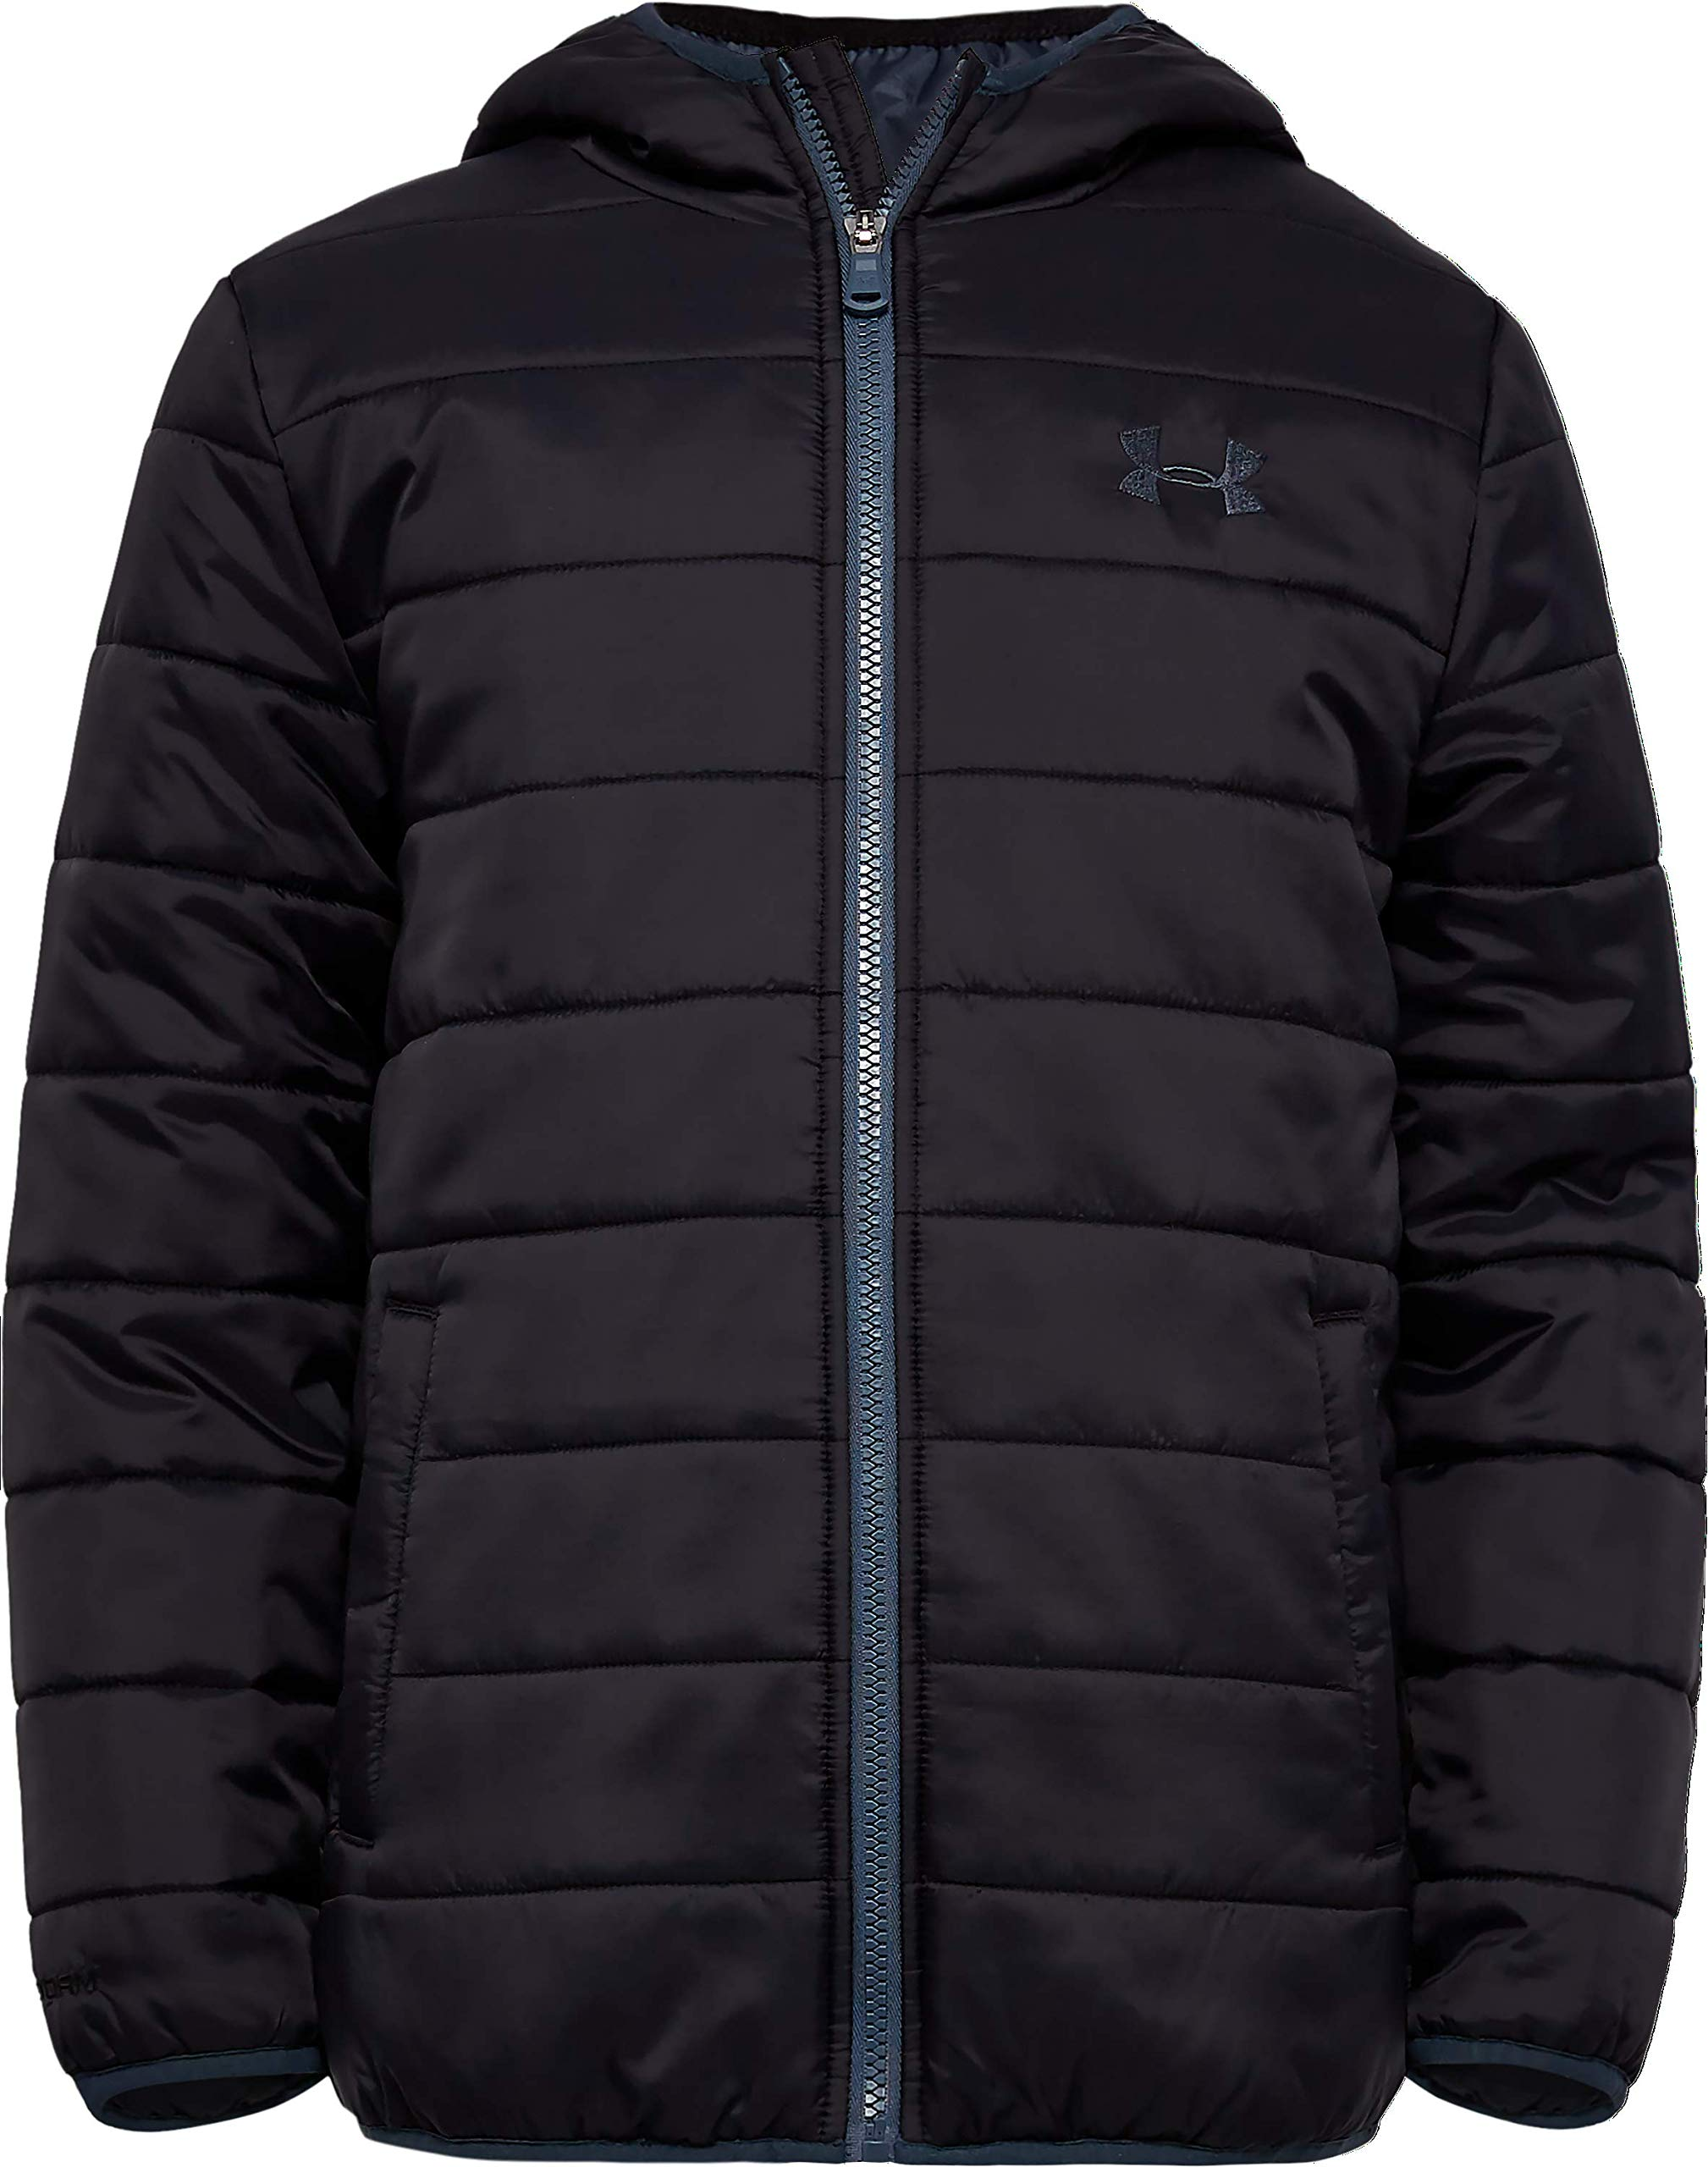 Under Armour Boys' Big Pronto Puffer Jacket, Black F, YLG by Under Armour